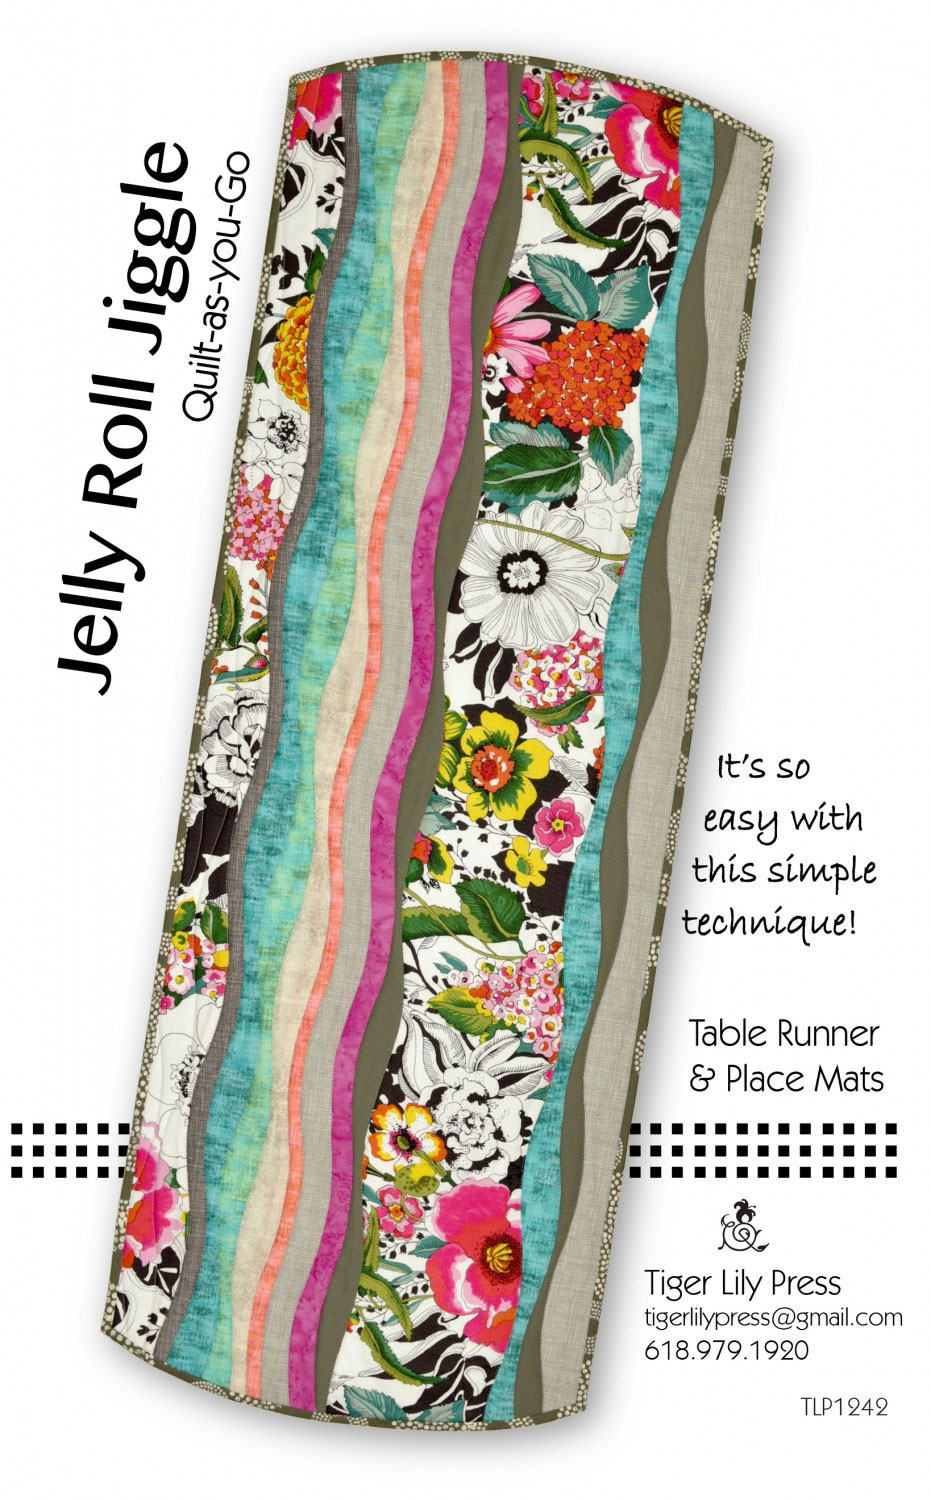 Jelly-Roll-Jiggle-Quilt-as-you-go-Table-Runner-and-place-mats-sewing-pattern-Tiger-Lily-Press-front